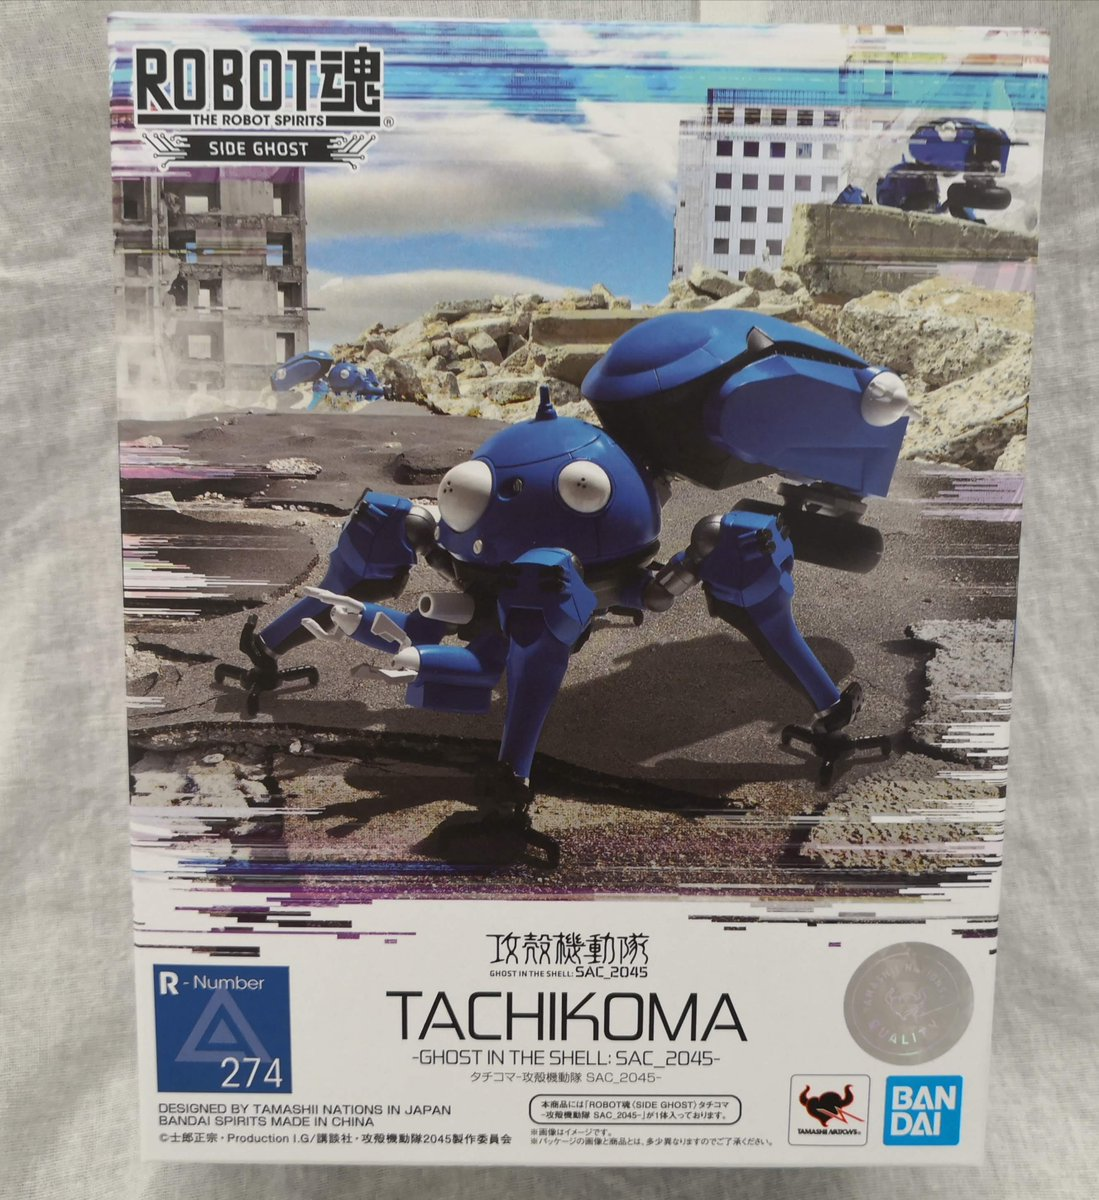 The Japanese Games Hobby Import Specialist On Twitter New Release Robot Spirits Side Ghost Tachikoma Ghost In The Shell Sac 2045 Bandai In Stock Https T Co 4bzbng37cy 9 Off